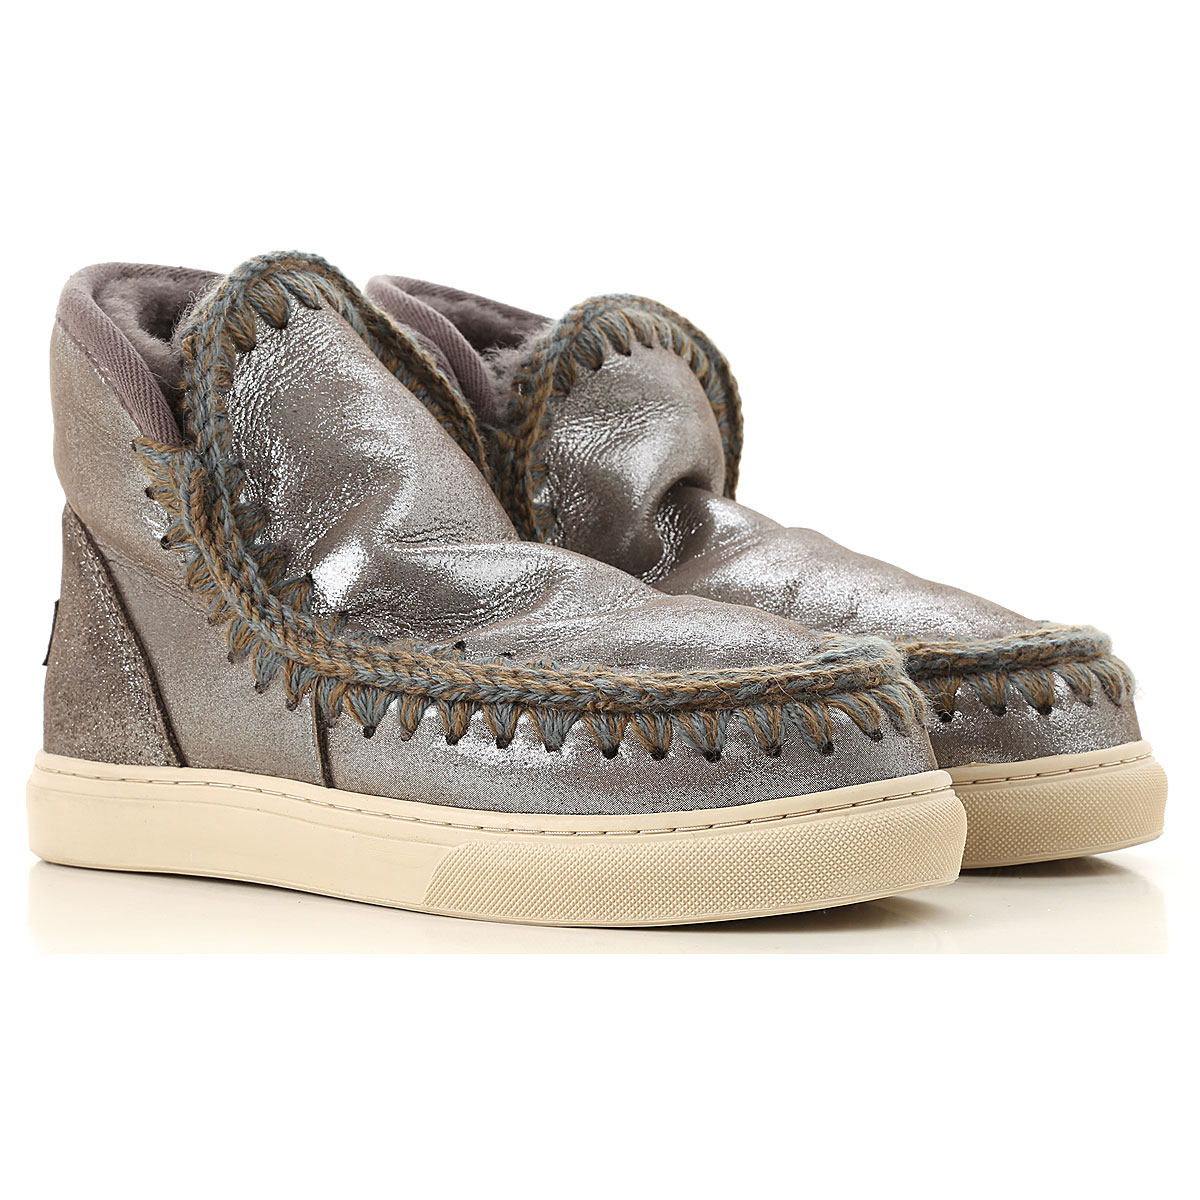 Image of Mou Boots for Women, Booties, Glitter Grey, suede, 2017, EUR 36 - UK 3 - USA 5.5 EUR 37 - UK 4 - USA 6.5 EUR 39 - UK 6 - USA 8.5 EUR 40 - UK 7 - USA 9.5